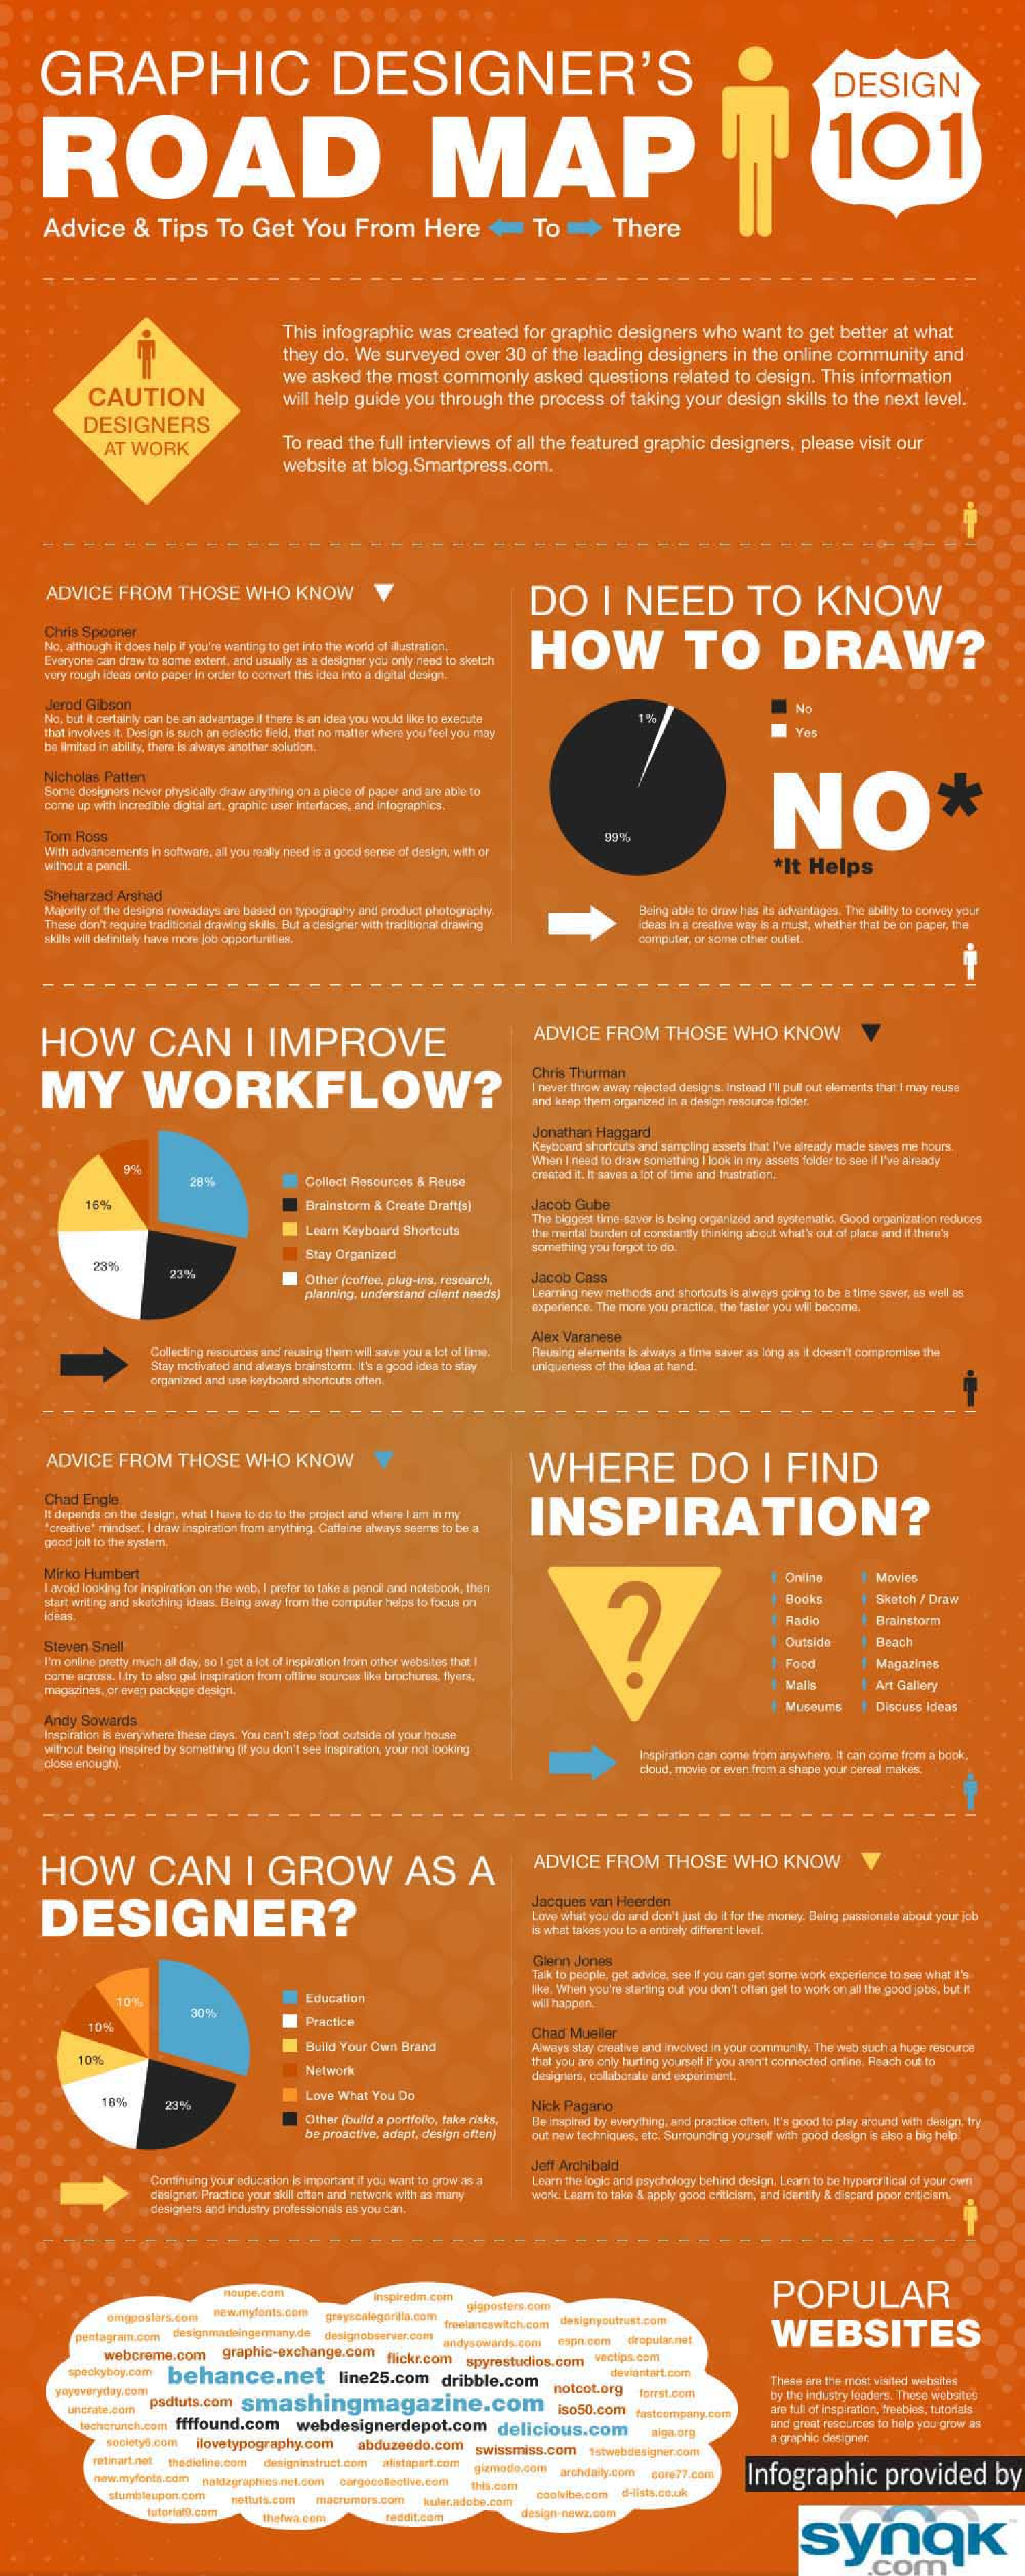 Graphic Designer's Road Map Infographic